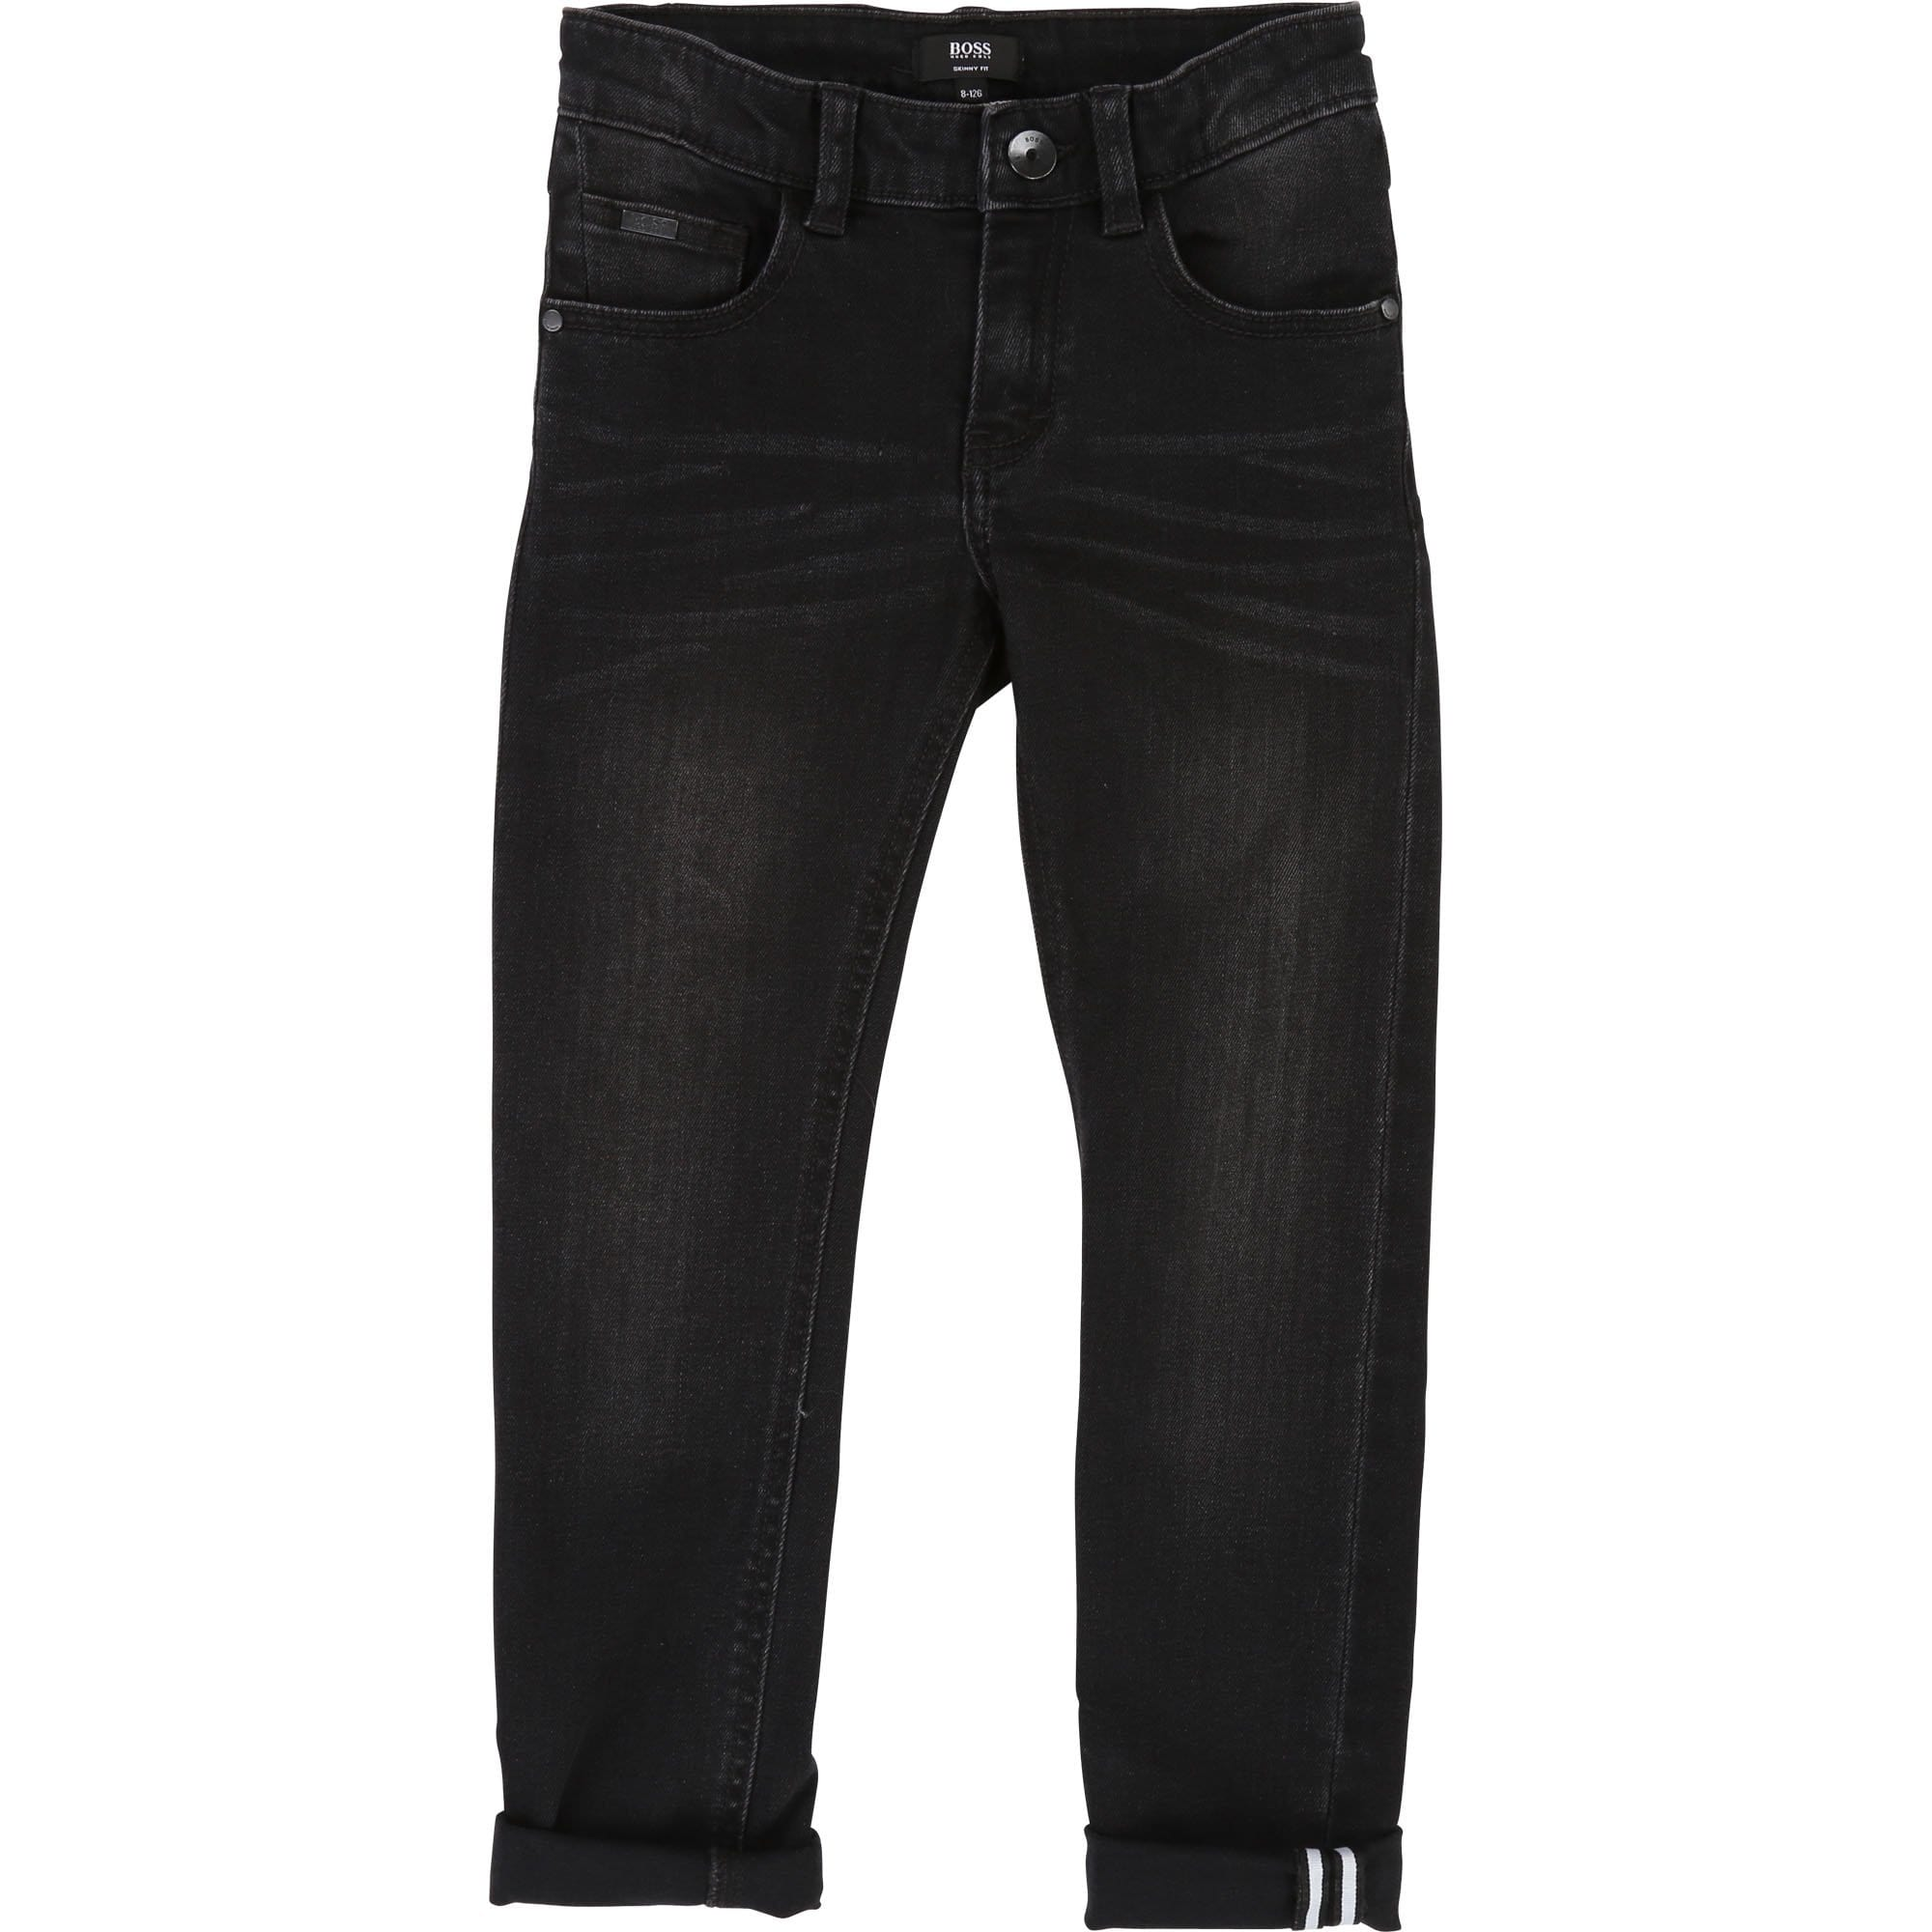 Hugo Boss Denim Jeans Black